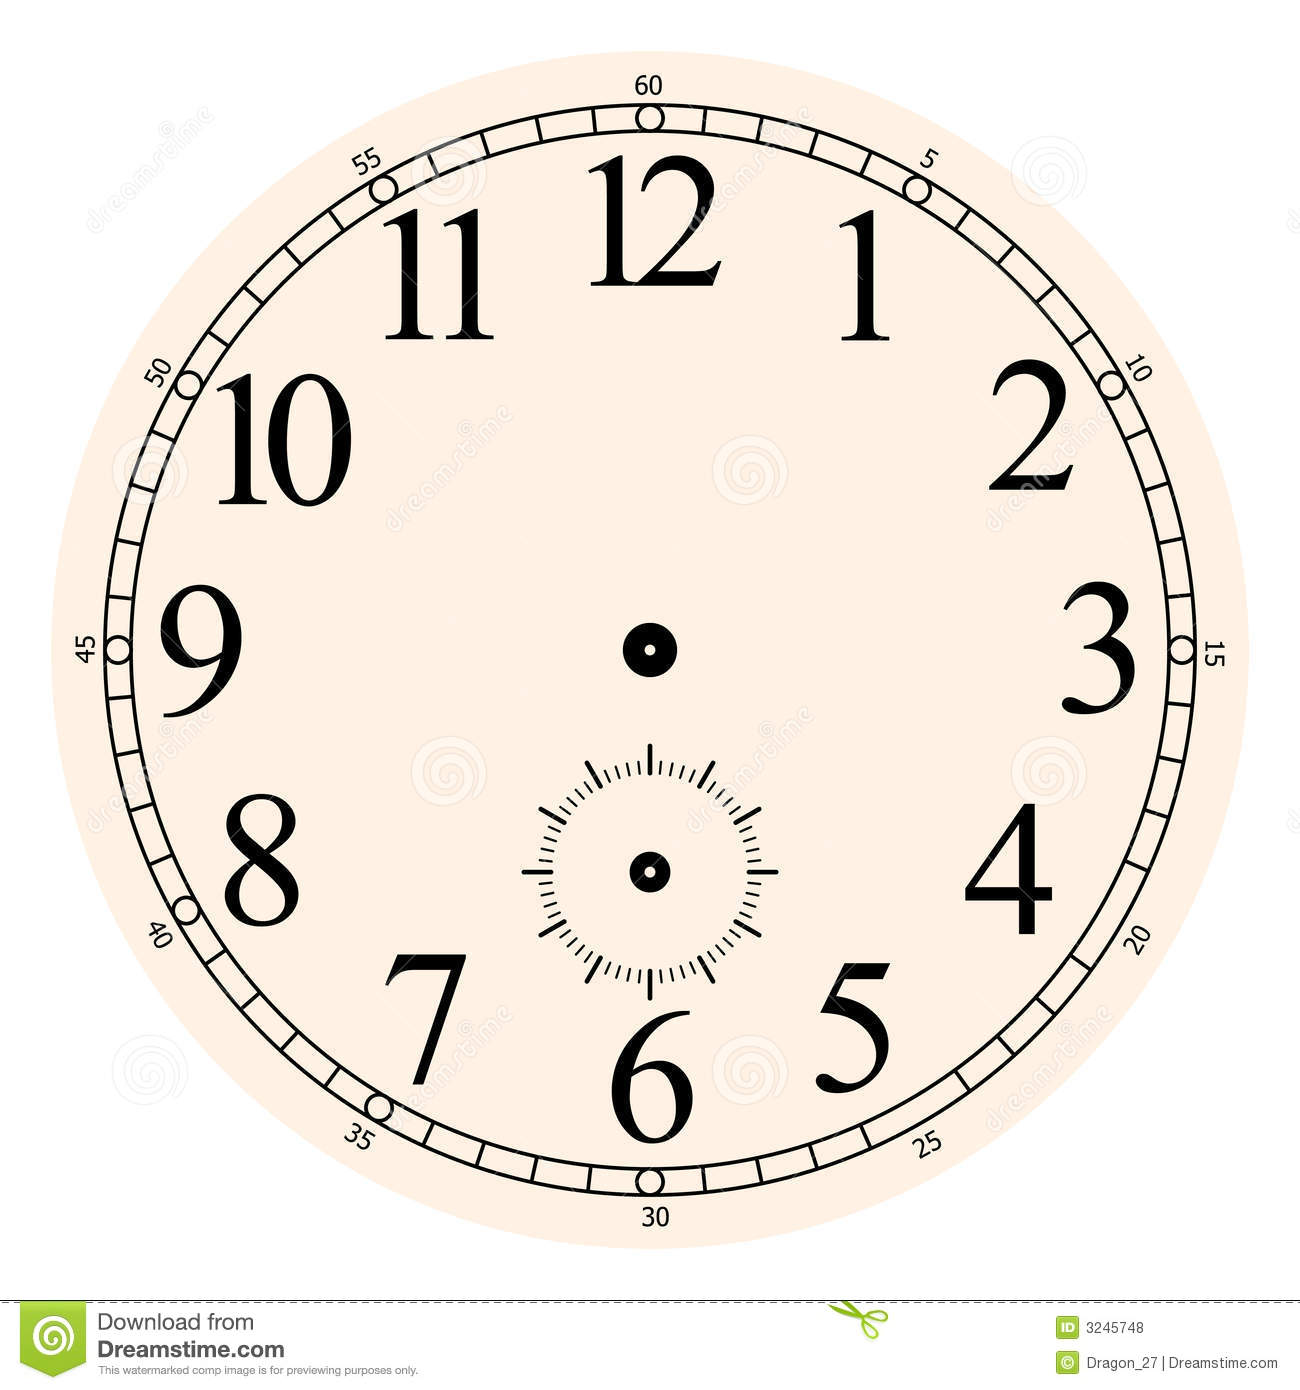 Clock face stock vector. Illustration of quartz, clock.